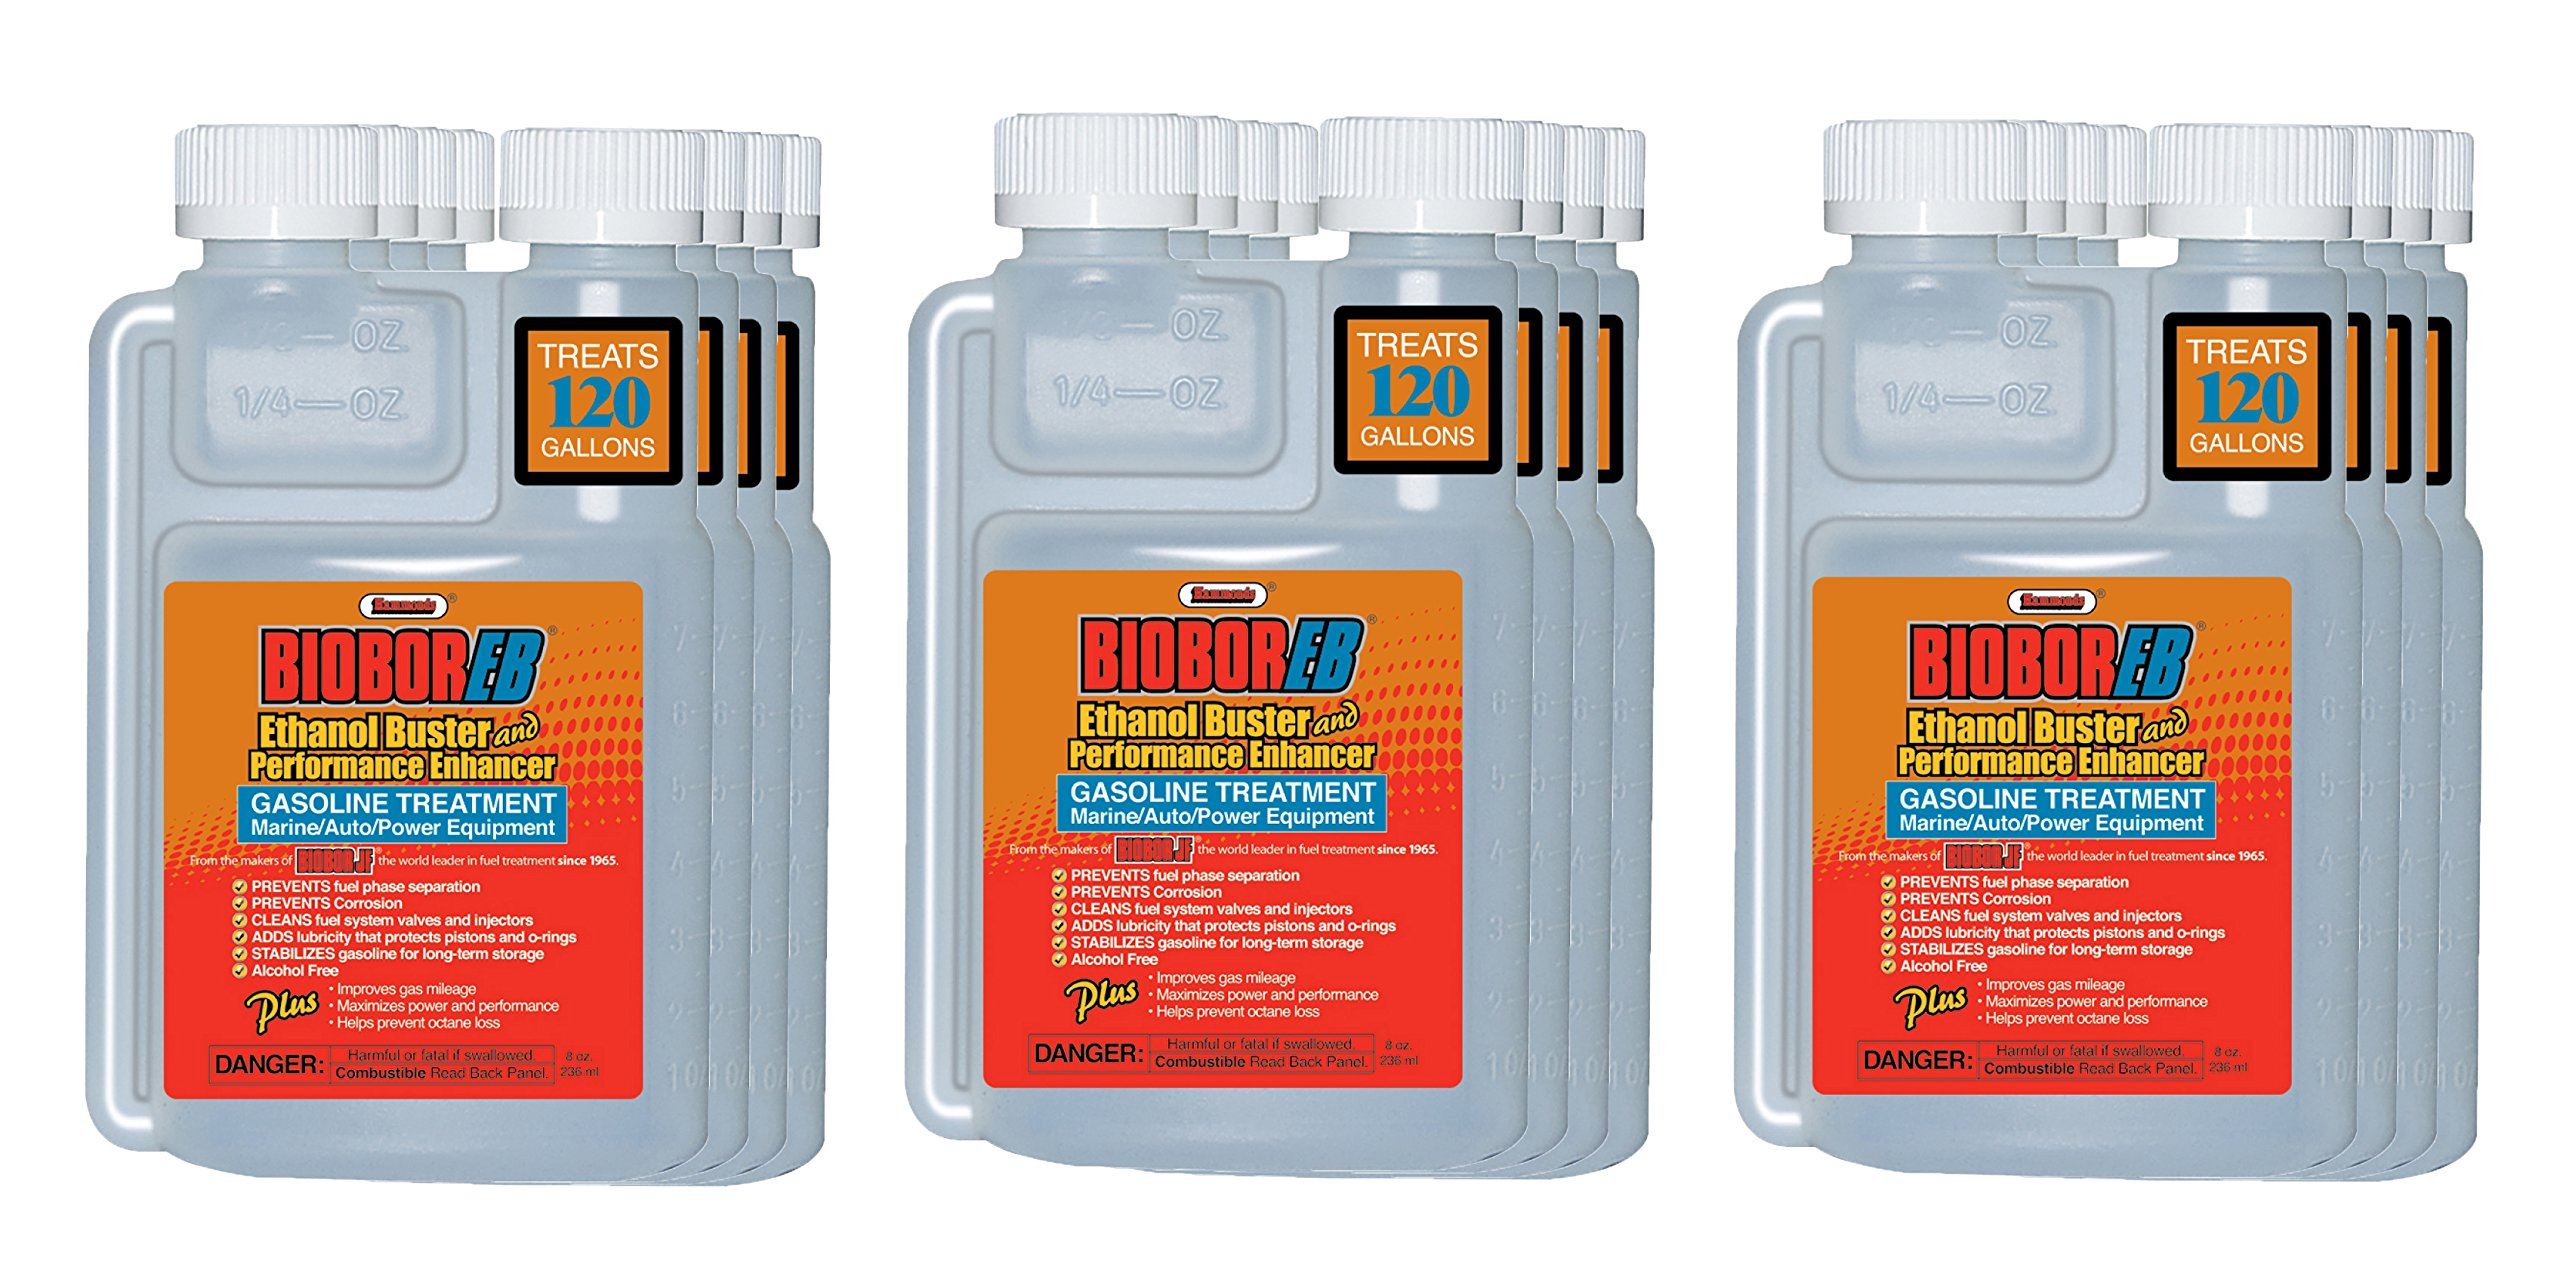 Biobor EB, Ethanol Buster and Performance Enhancer Gasoline Treatment, 8 oz, 12-Pack by Hammonds